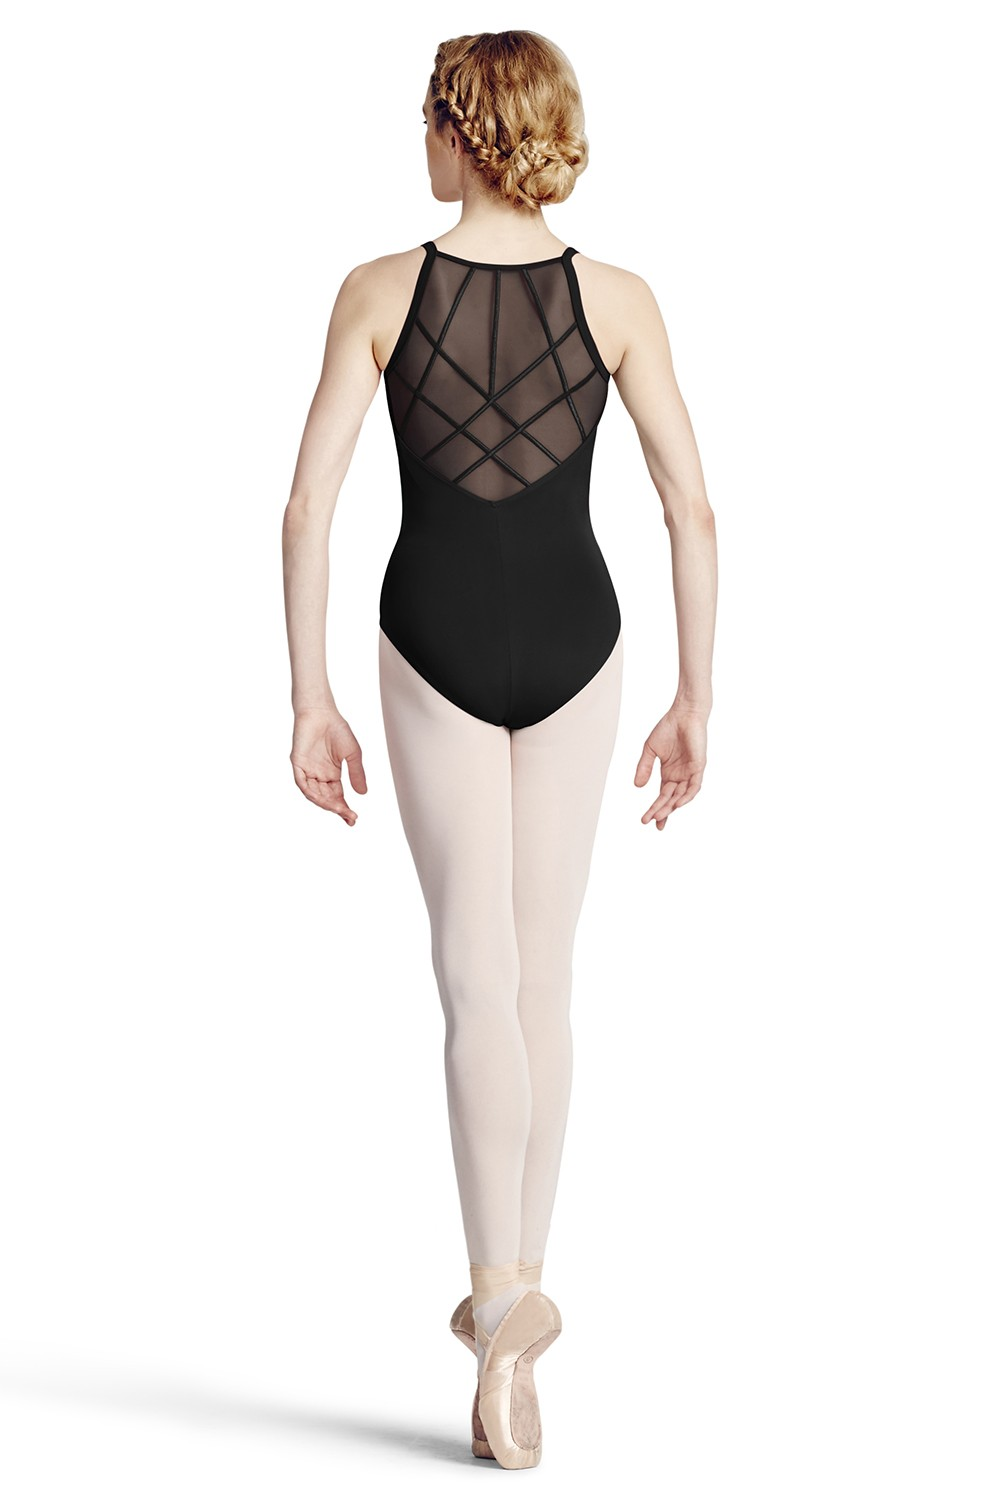 Persei Women's Dance Leotards